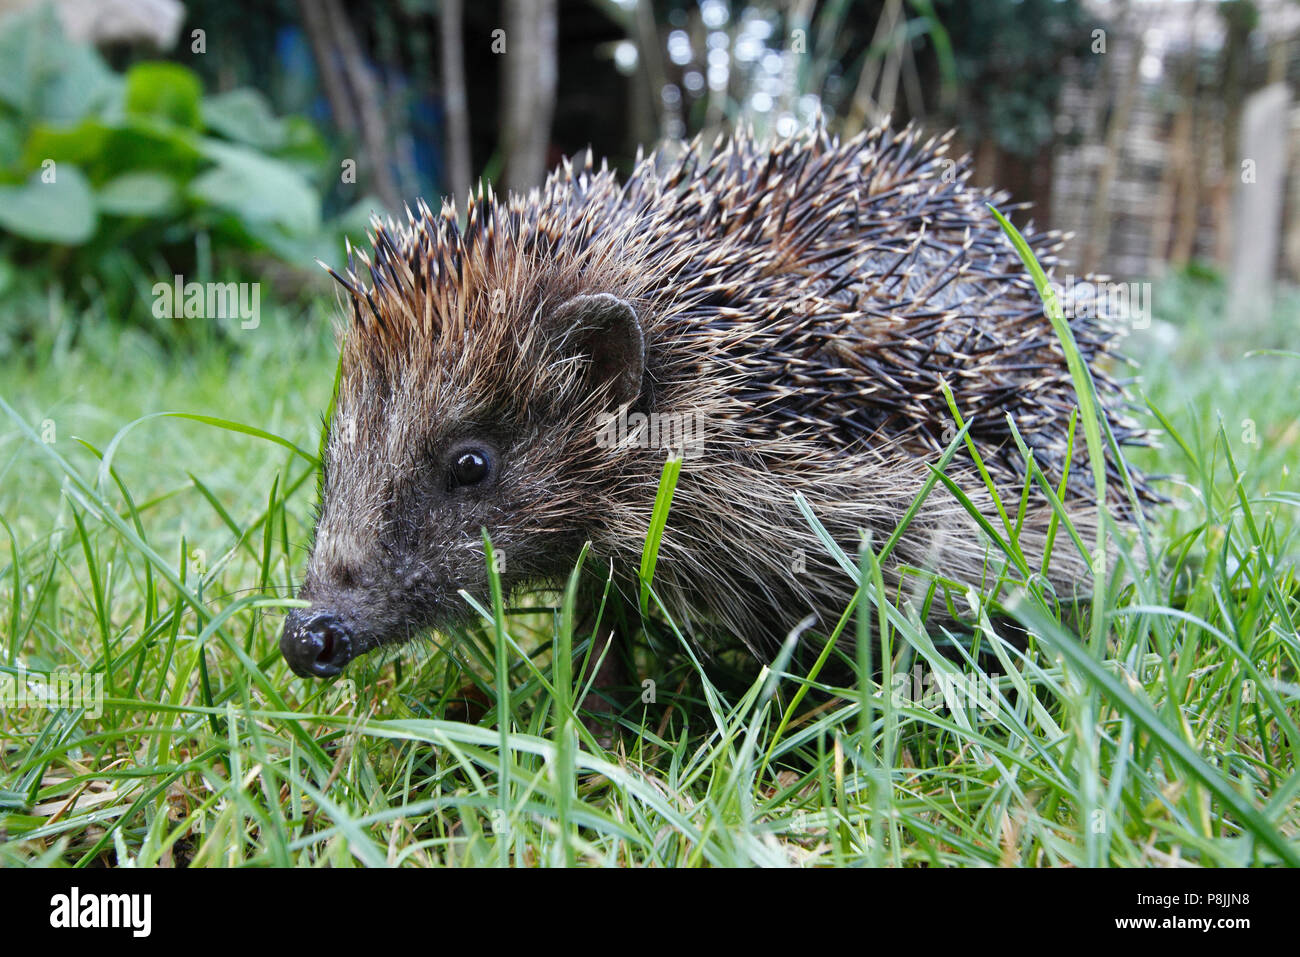 Hedgehog in grass in a garden - Stock Image